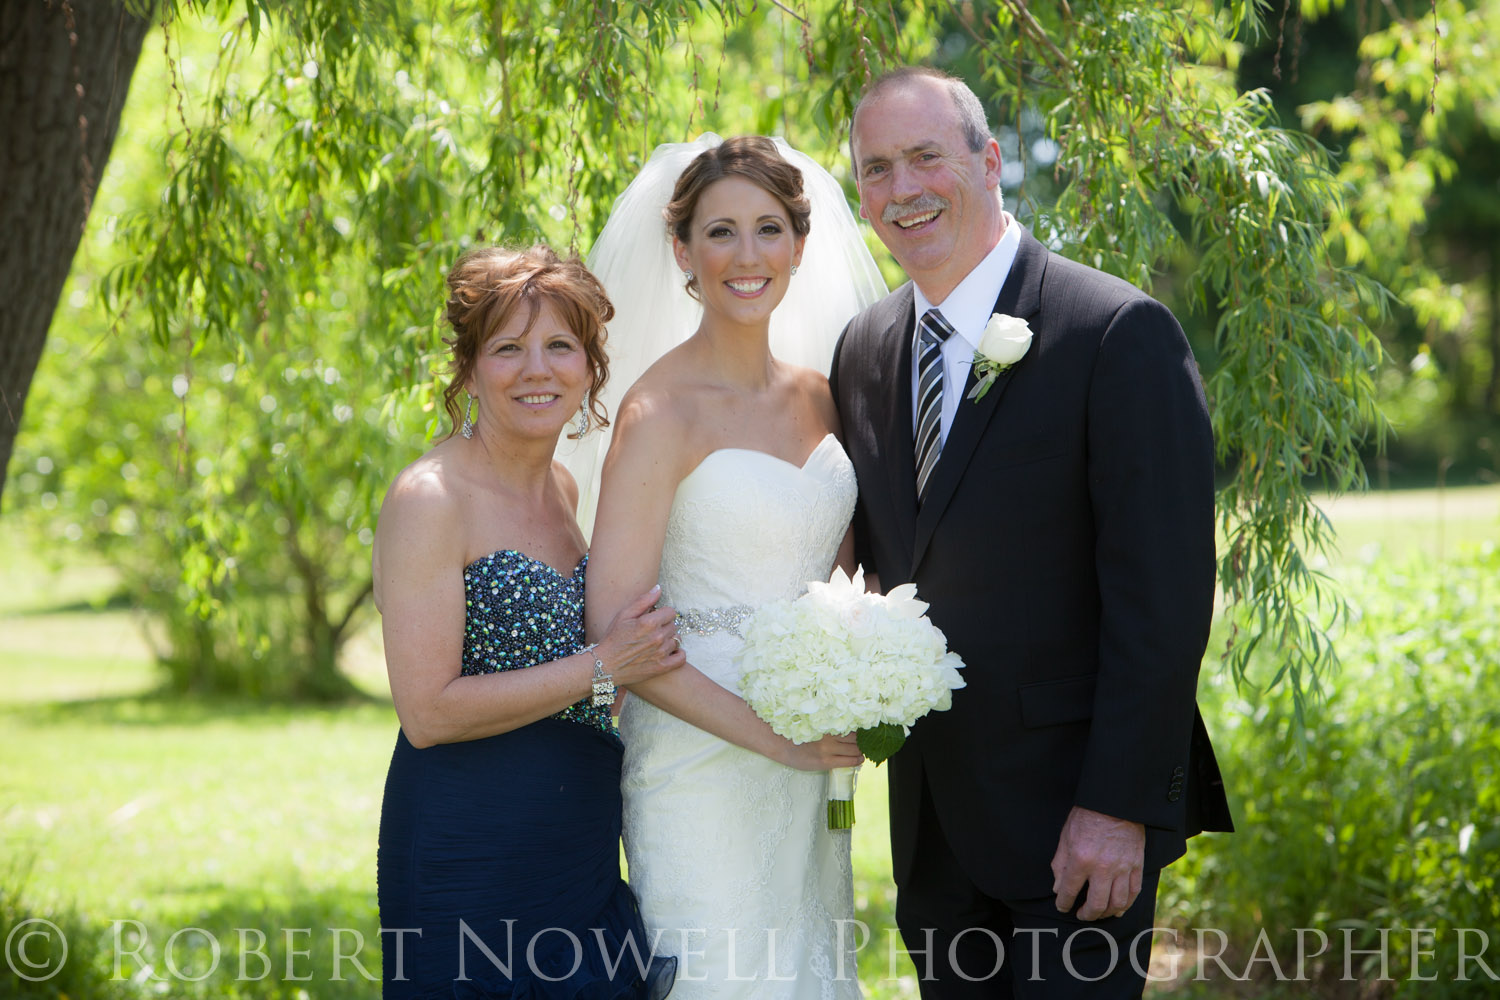 Bride, wedding, Niagara, Robert Nowell Photographer